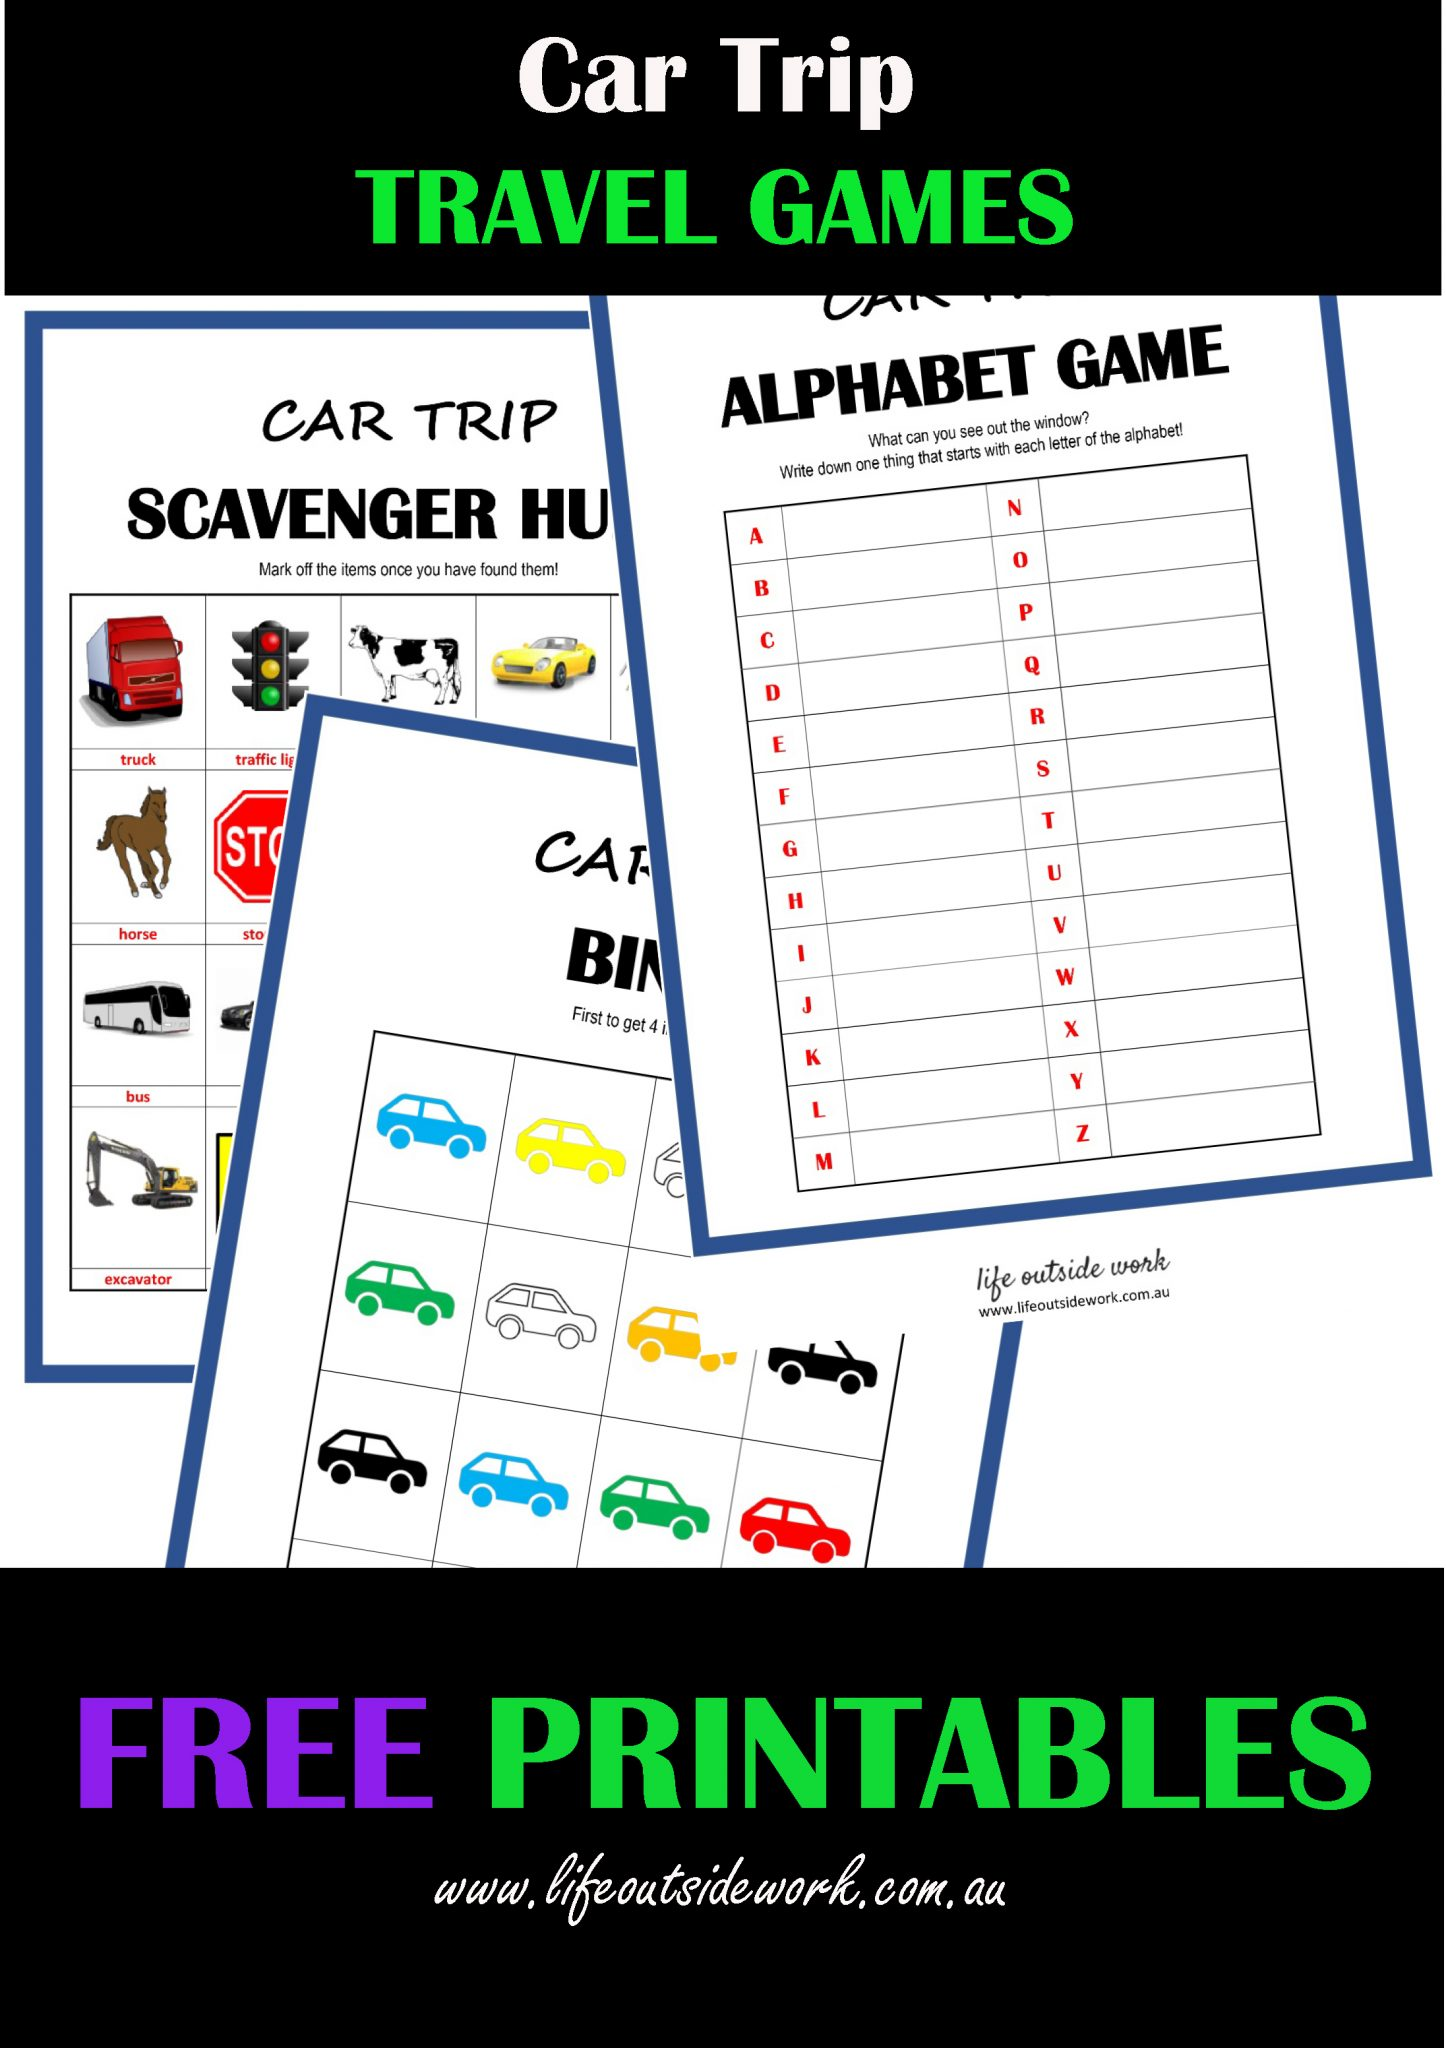 Car Travel Games Free Printables Life Outside Work